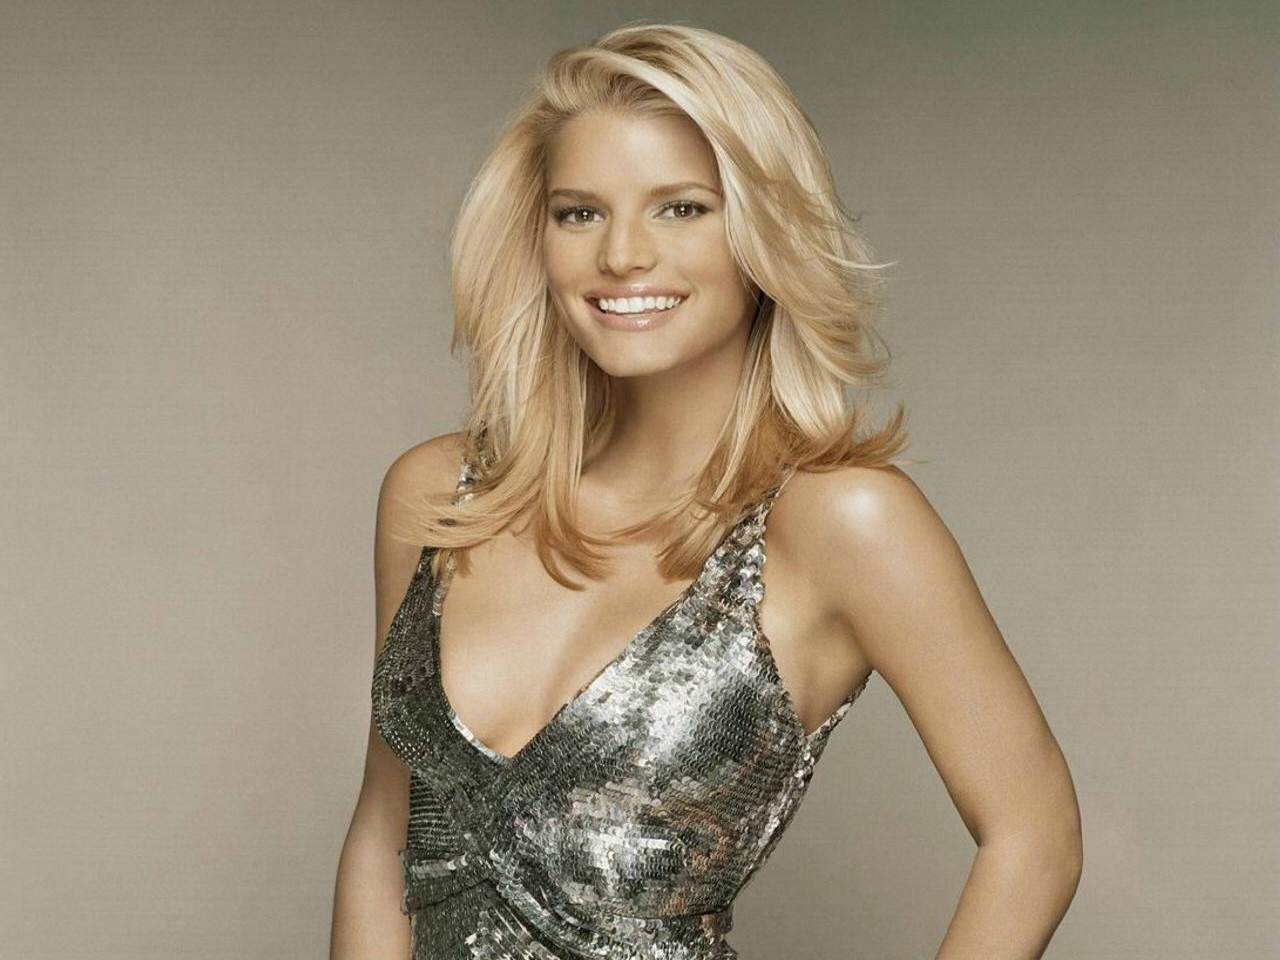 Wallpaper - riflessi glamour per Jessica Simpson